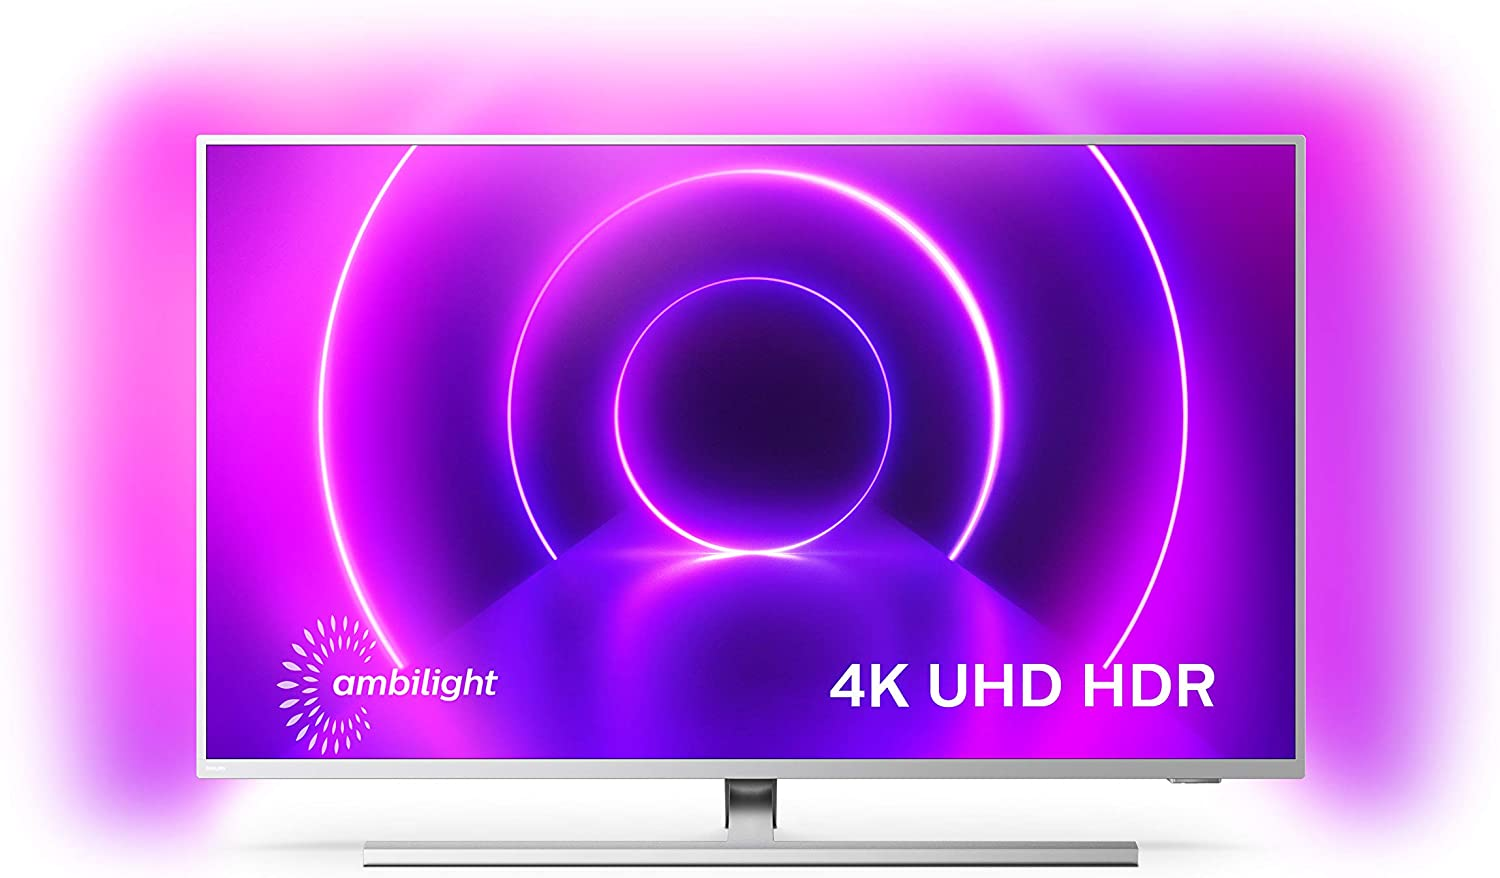 Televisor Philips Ambilight 65PUS8505/12, Smart TV de 65 pulgadas (4K UHD, P5 Perfect Picture Engine, Dolby Vision, Dolby Atmos, Control de voz, Android TV), Color plata claro (modelo de 2020/2021): Amazon.es: Electrónica